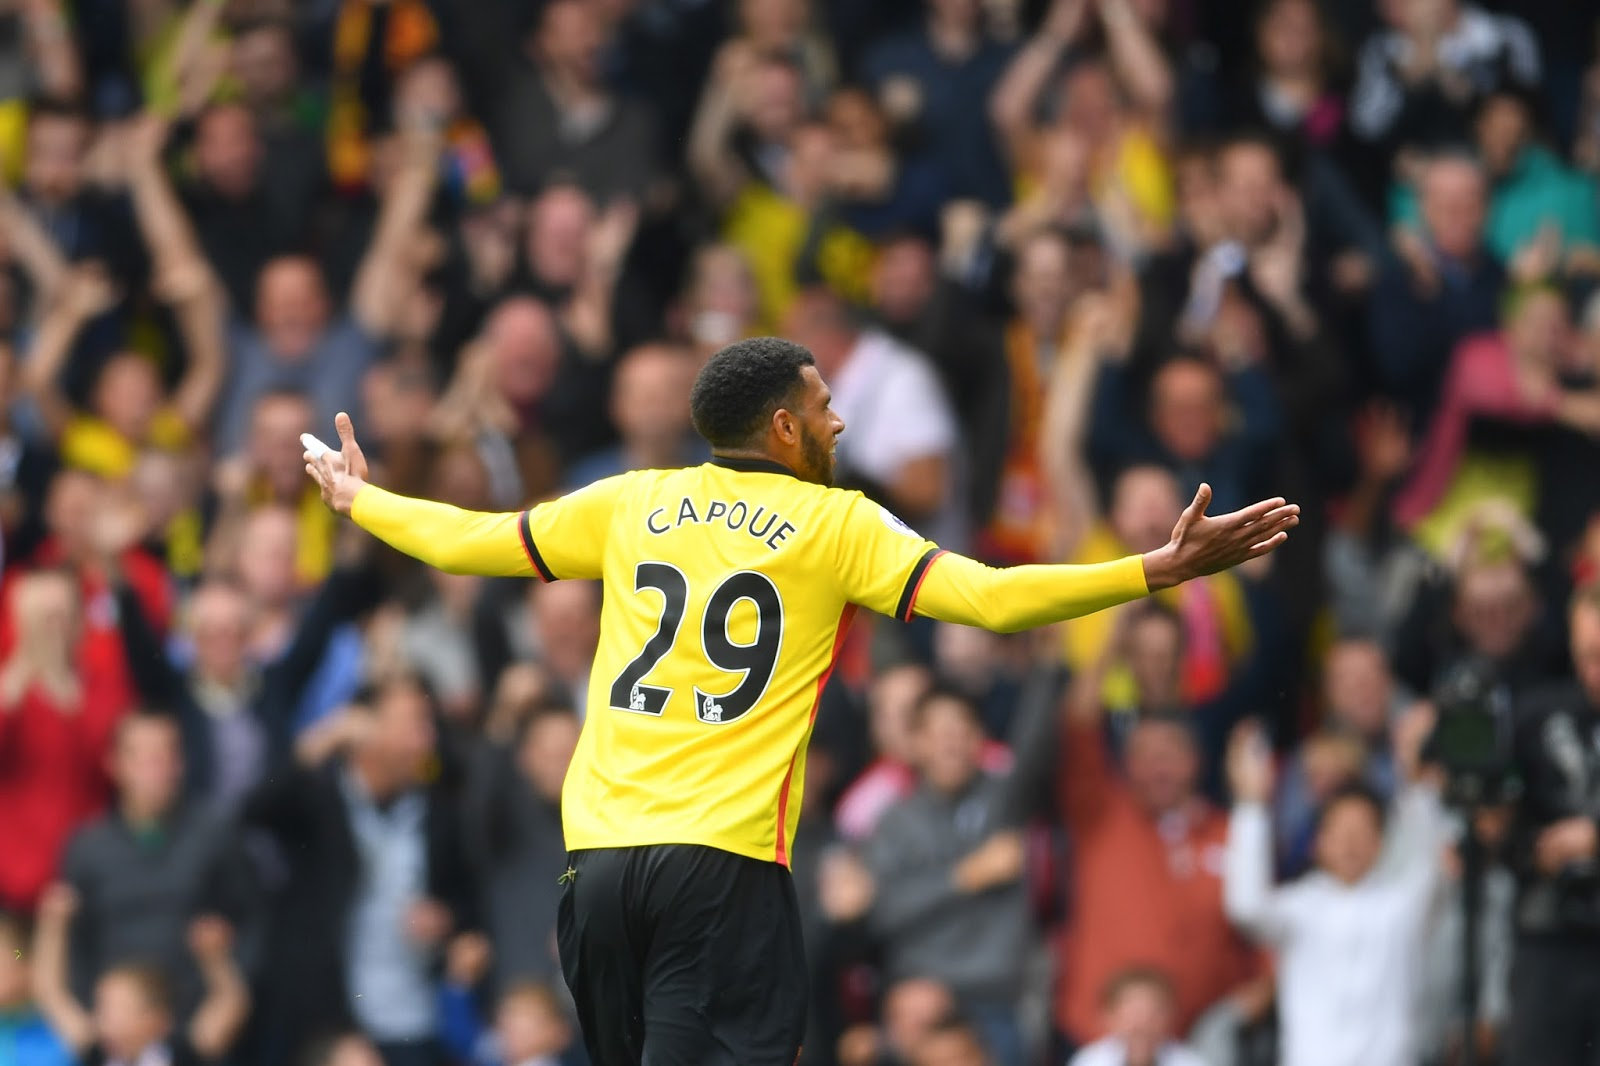 Watford 3-1 Man Utd: Late Hornets double sinks United Etienne Capoue